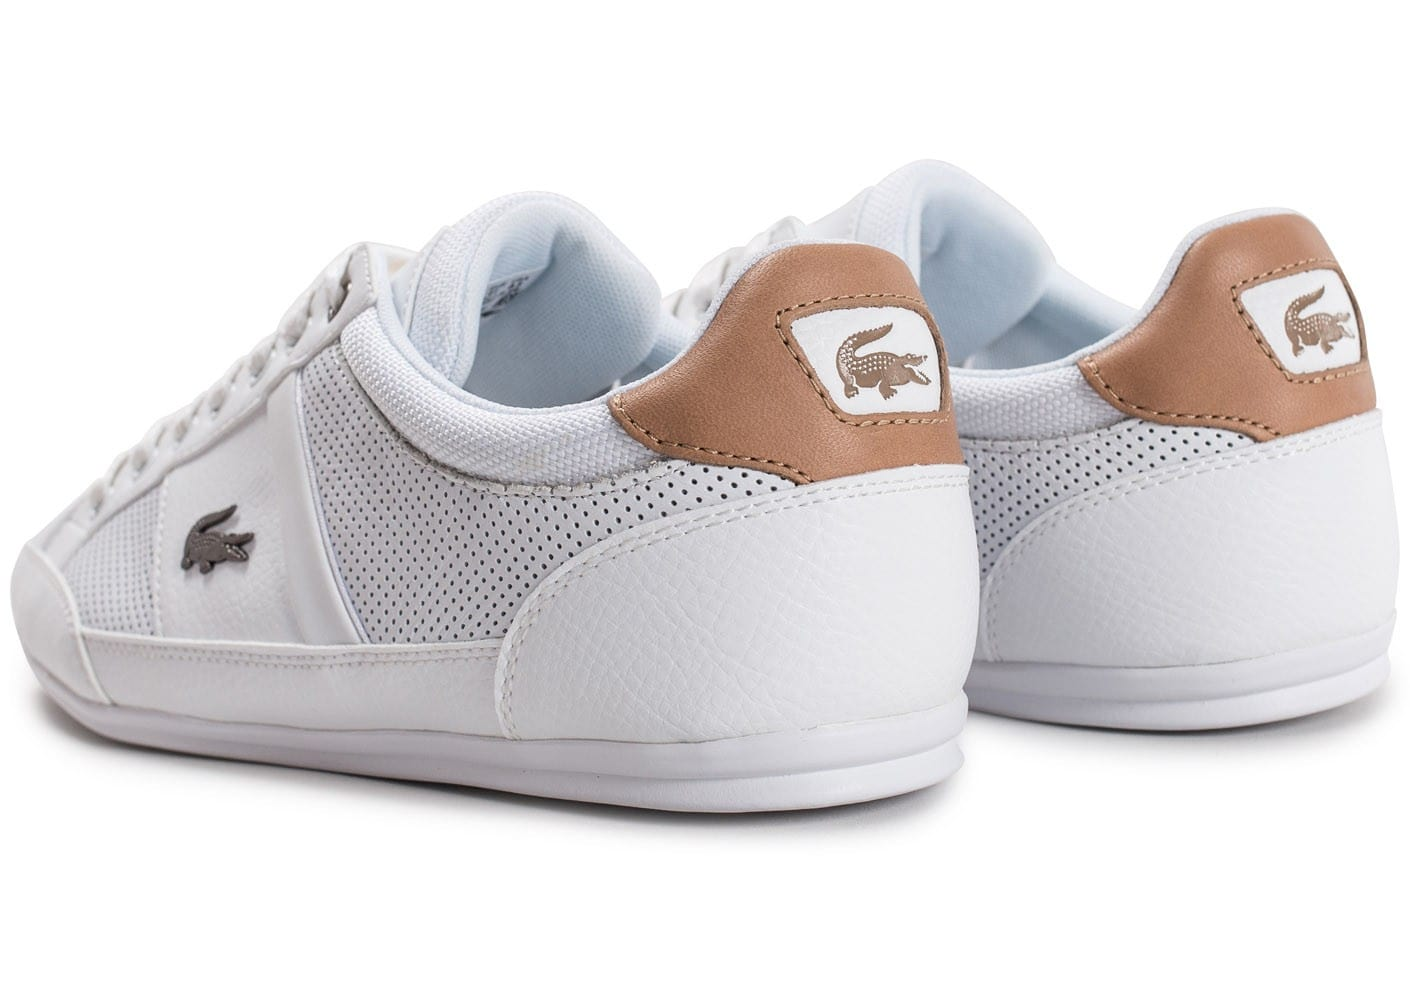 Blanche Chaymon Lacoste Chaussures Homme Baskets Chausport eHIE9WD2Yb